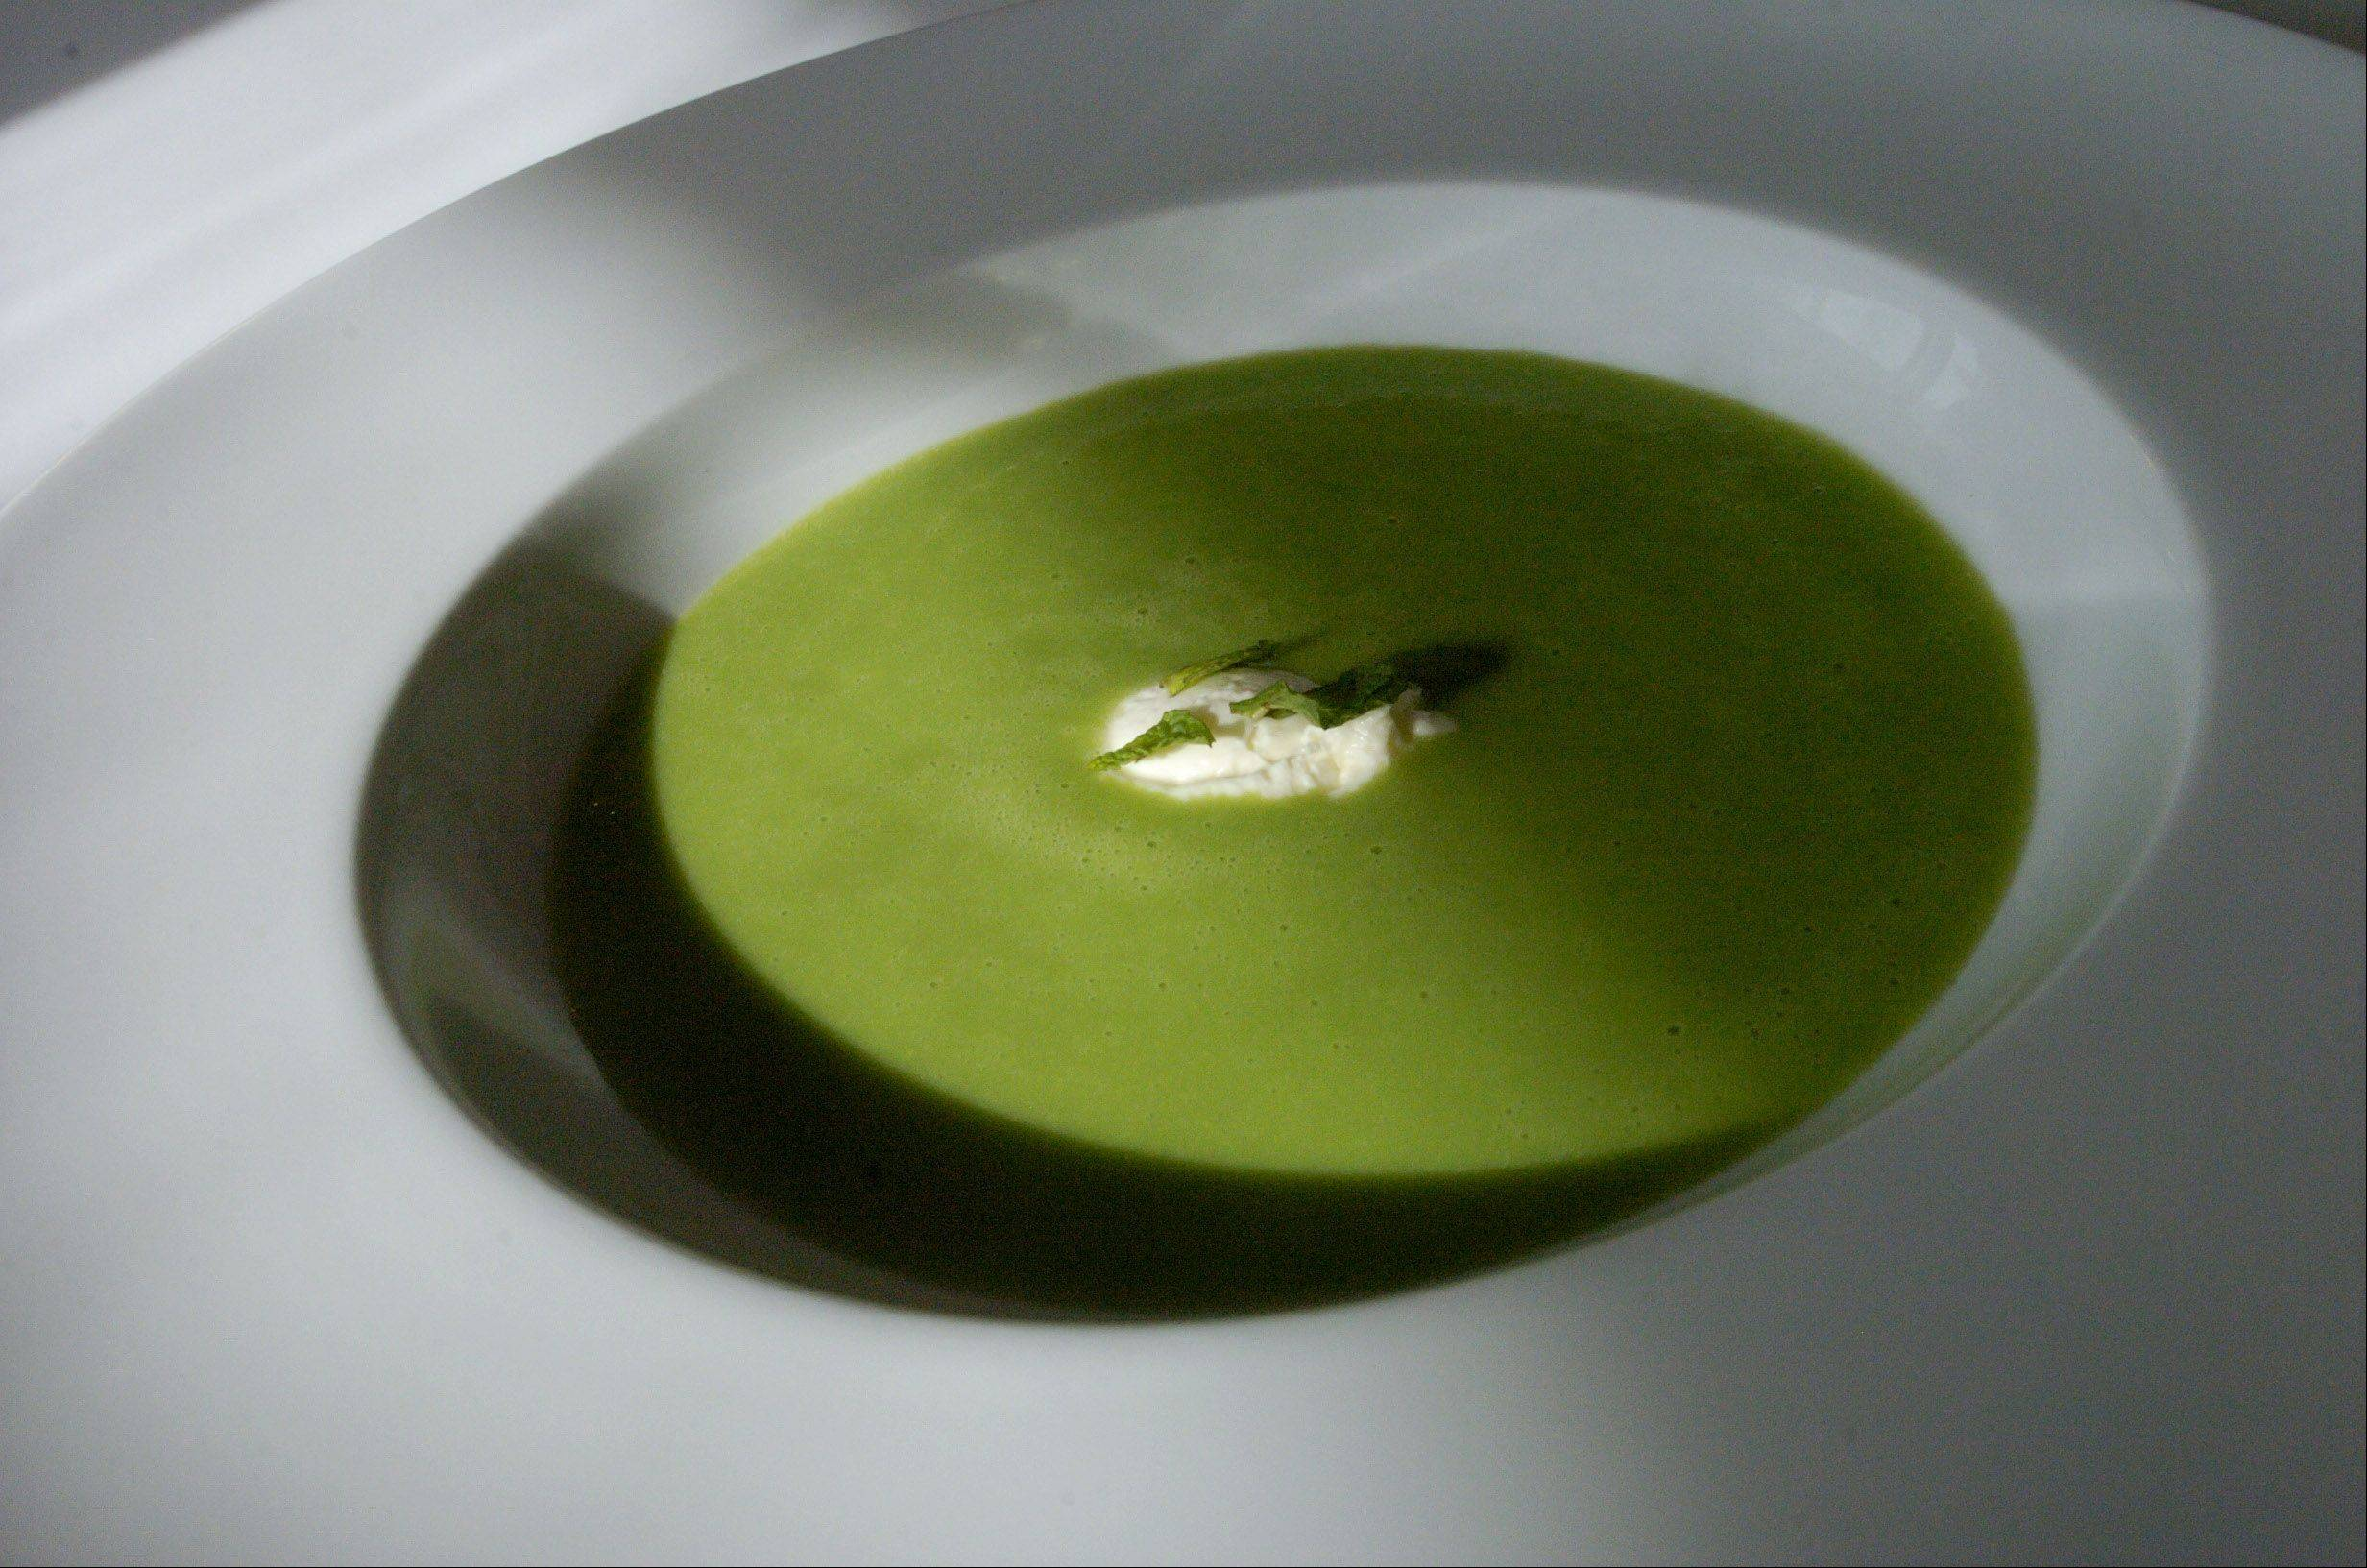 Chef Justin Perdue cools the cooked pea soup to maintain it's vibrant color. He reheats it before serving.